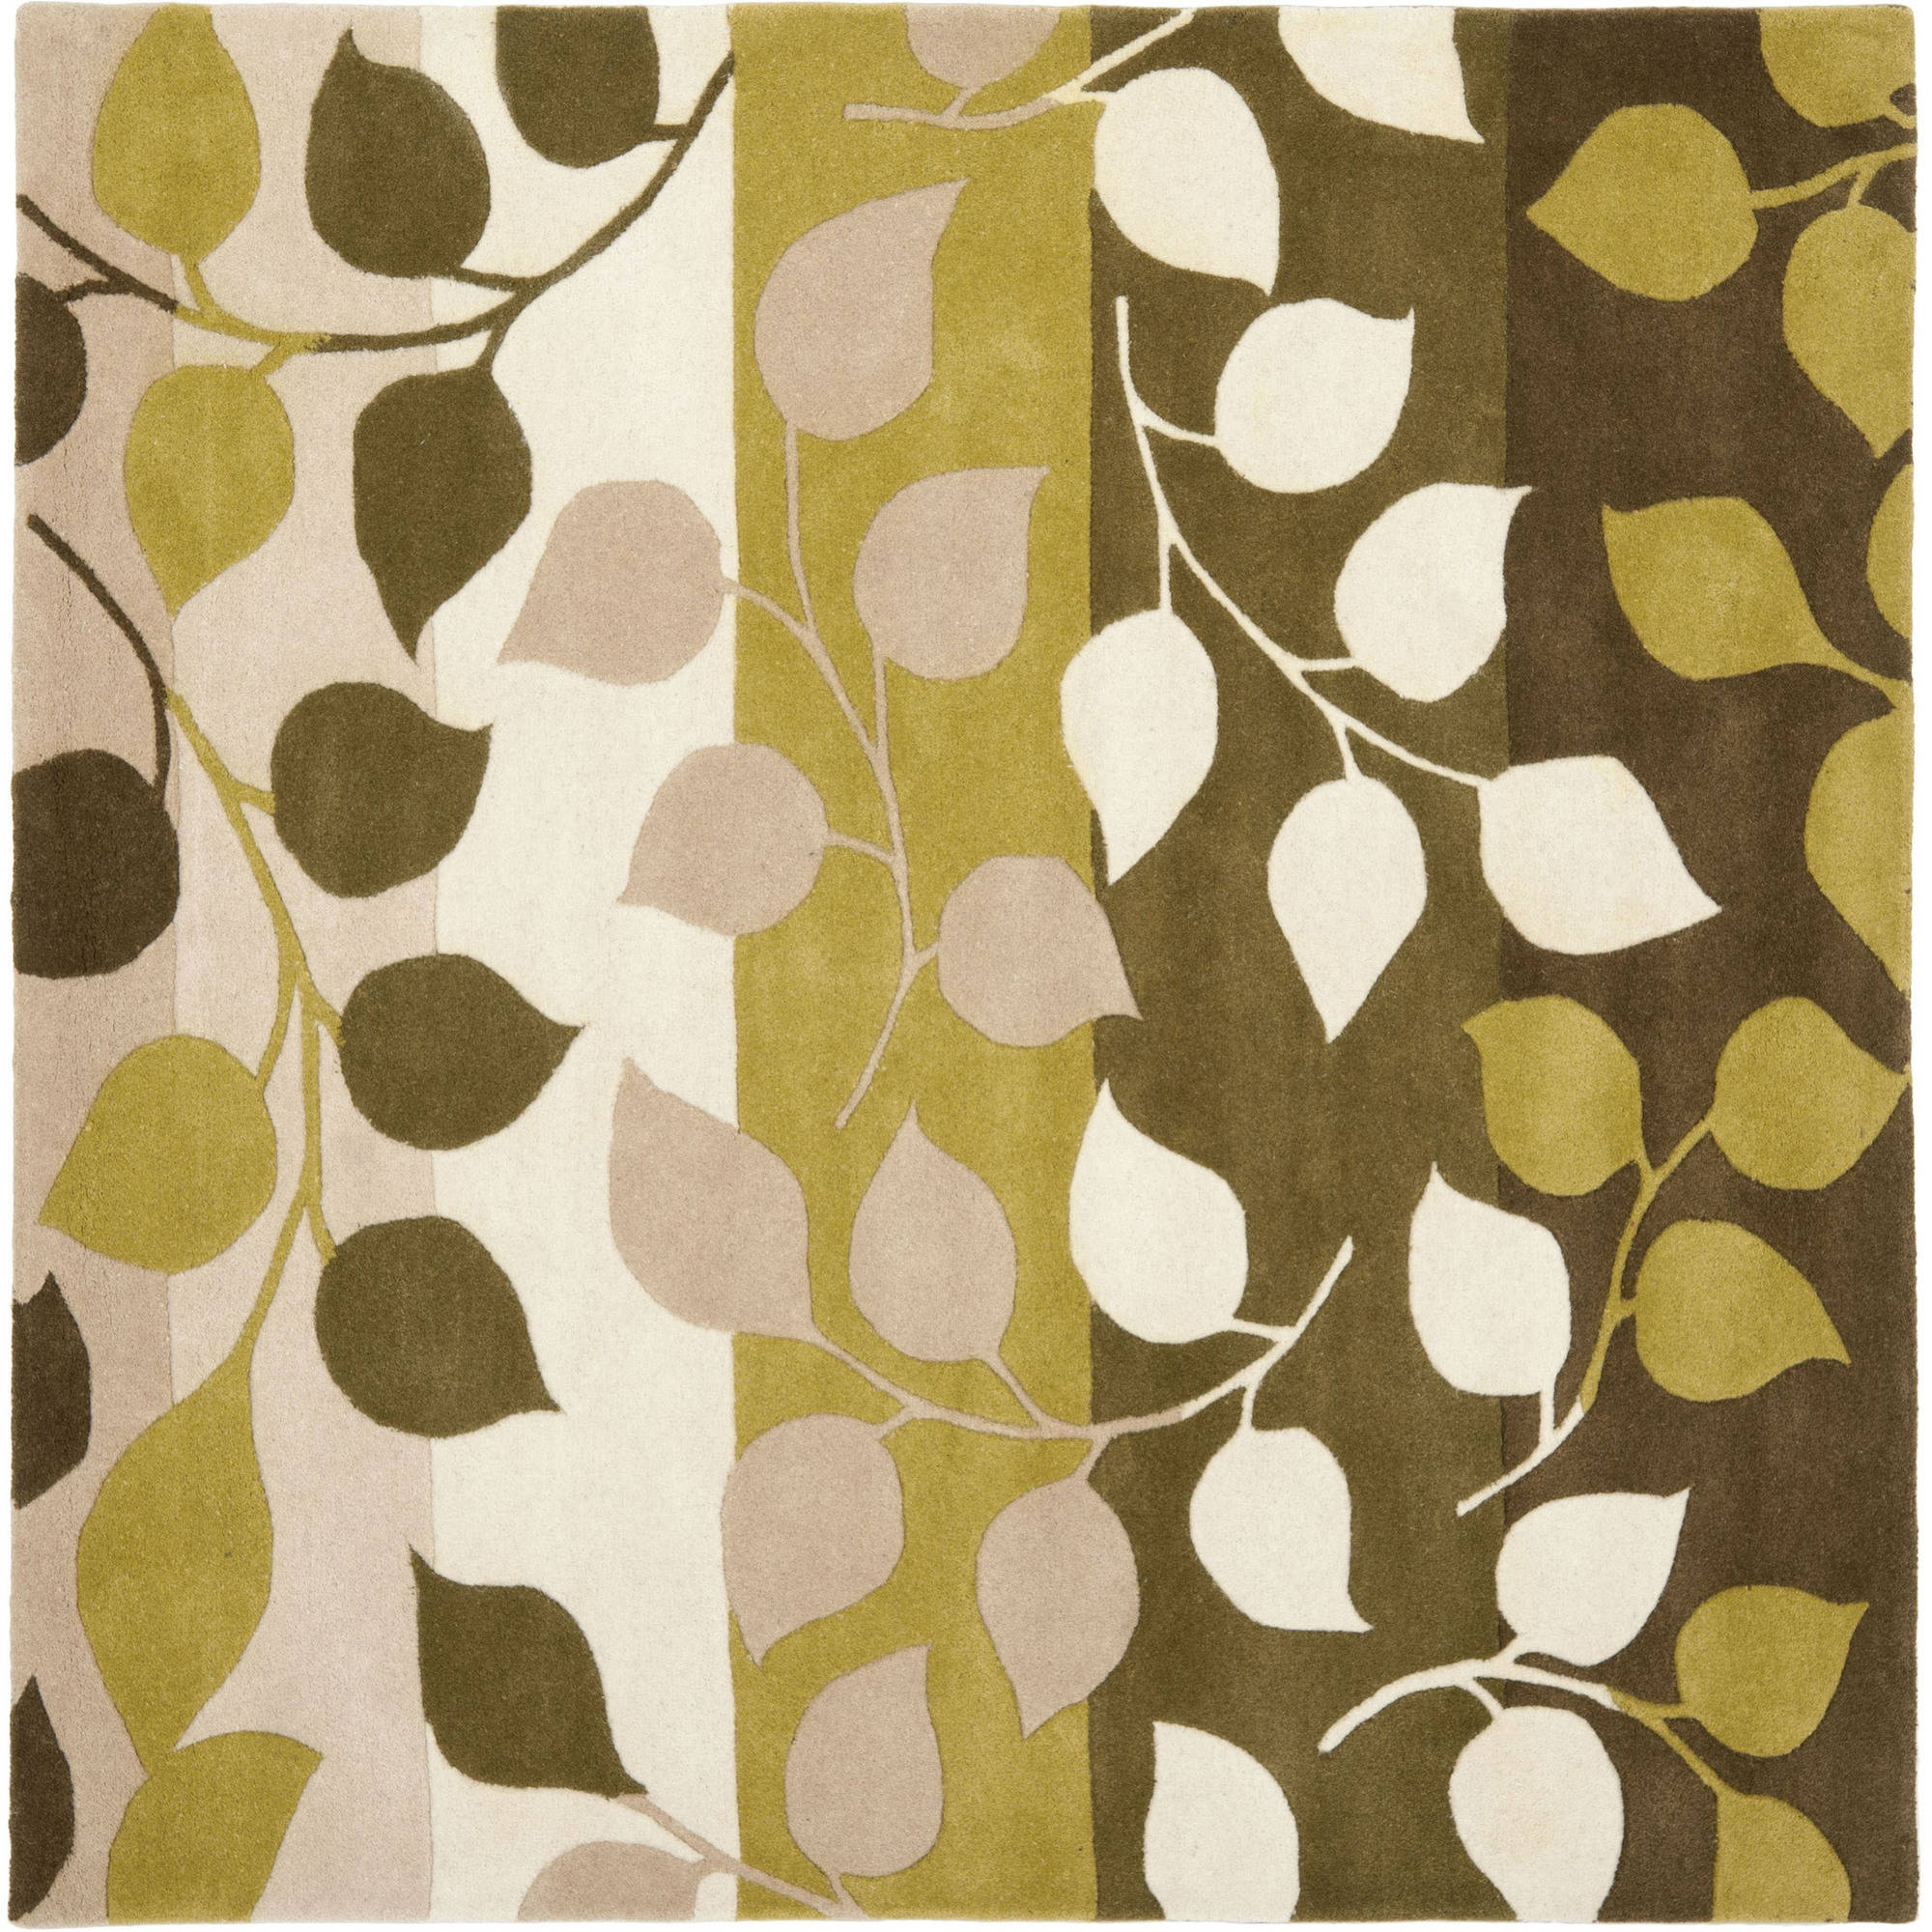 Safavieh Hand-Tufted Wool Area Rug, Green/Beige